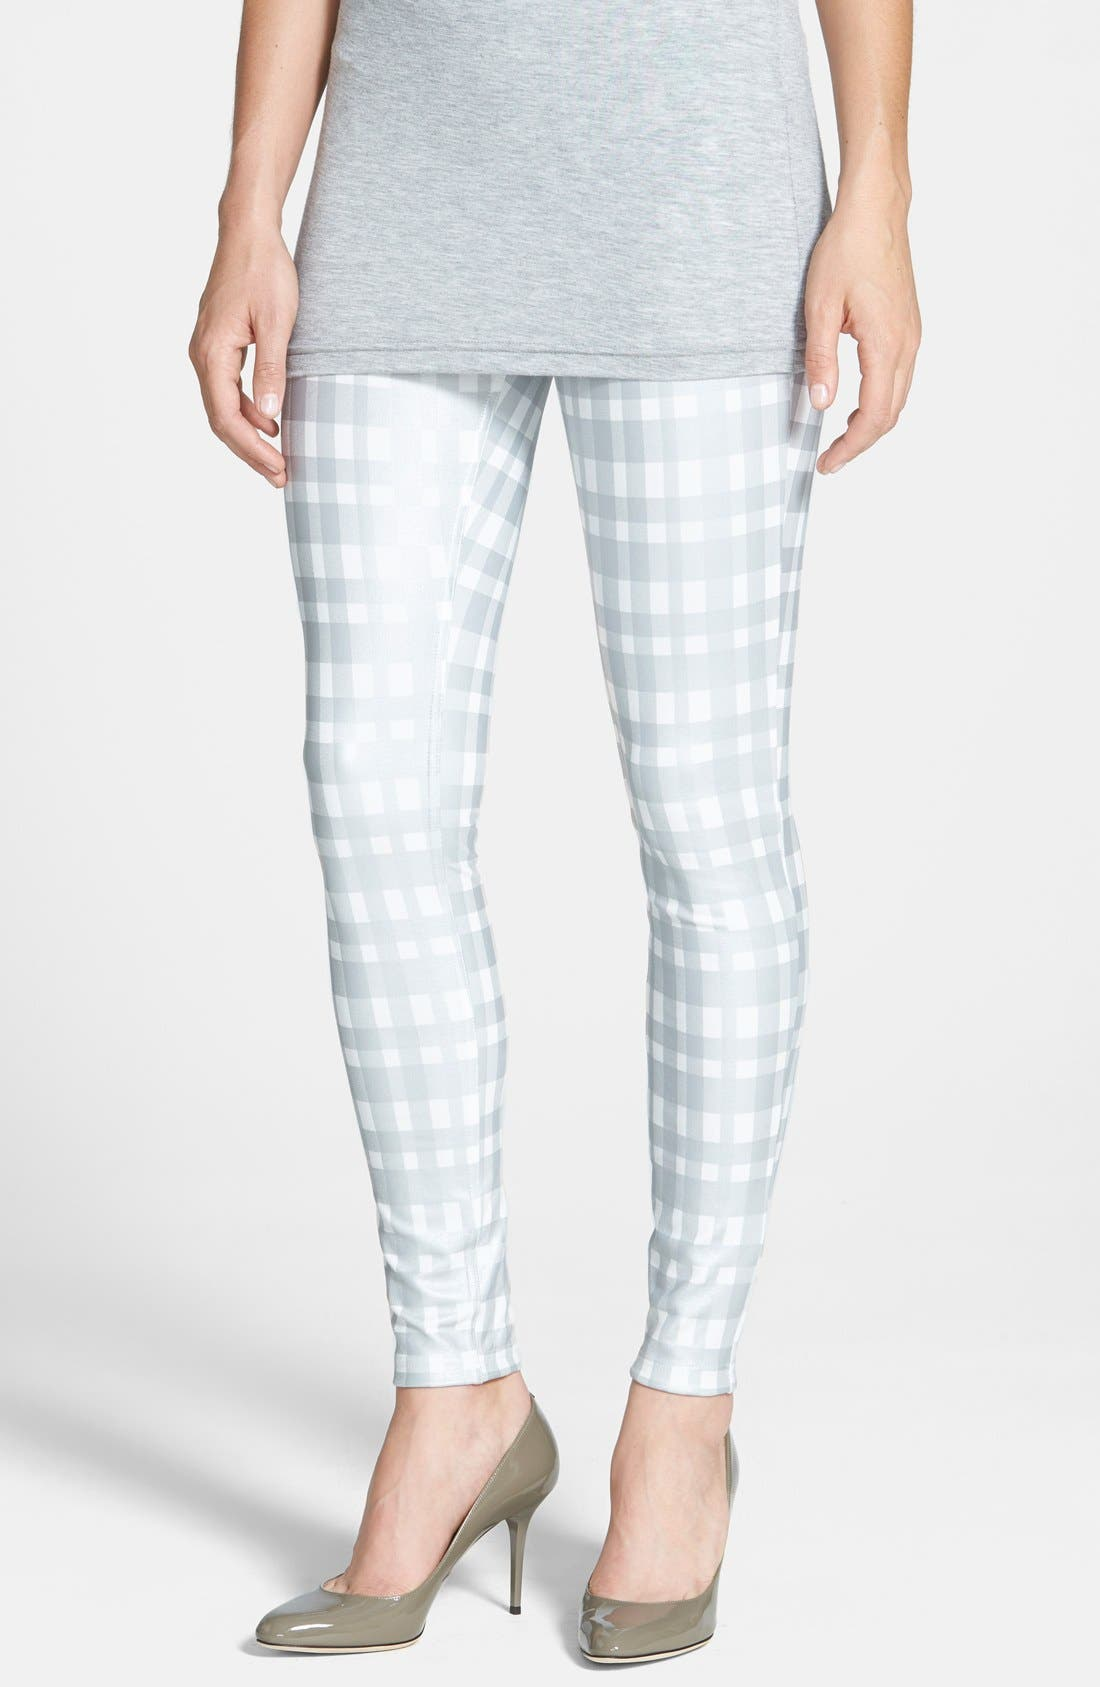 Alternate Image 1 Selected - Hue Plaid Print Ponte Leggings